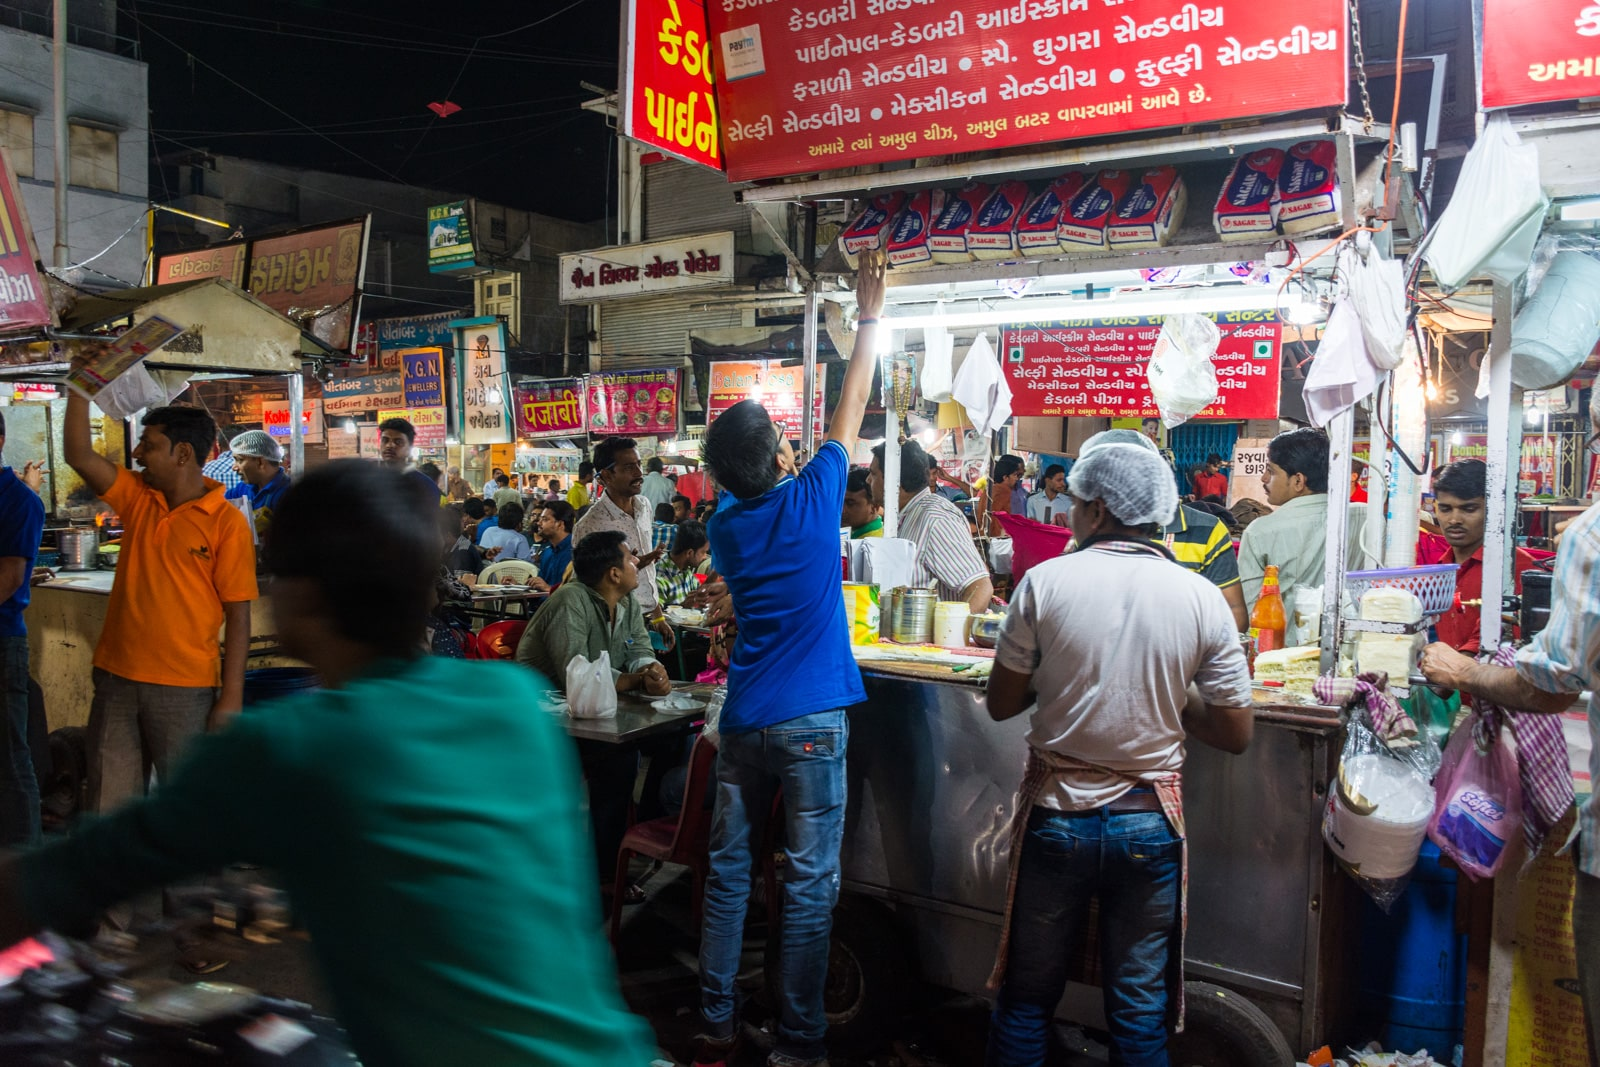 Night food market at Manek Chowk